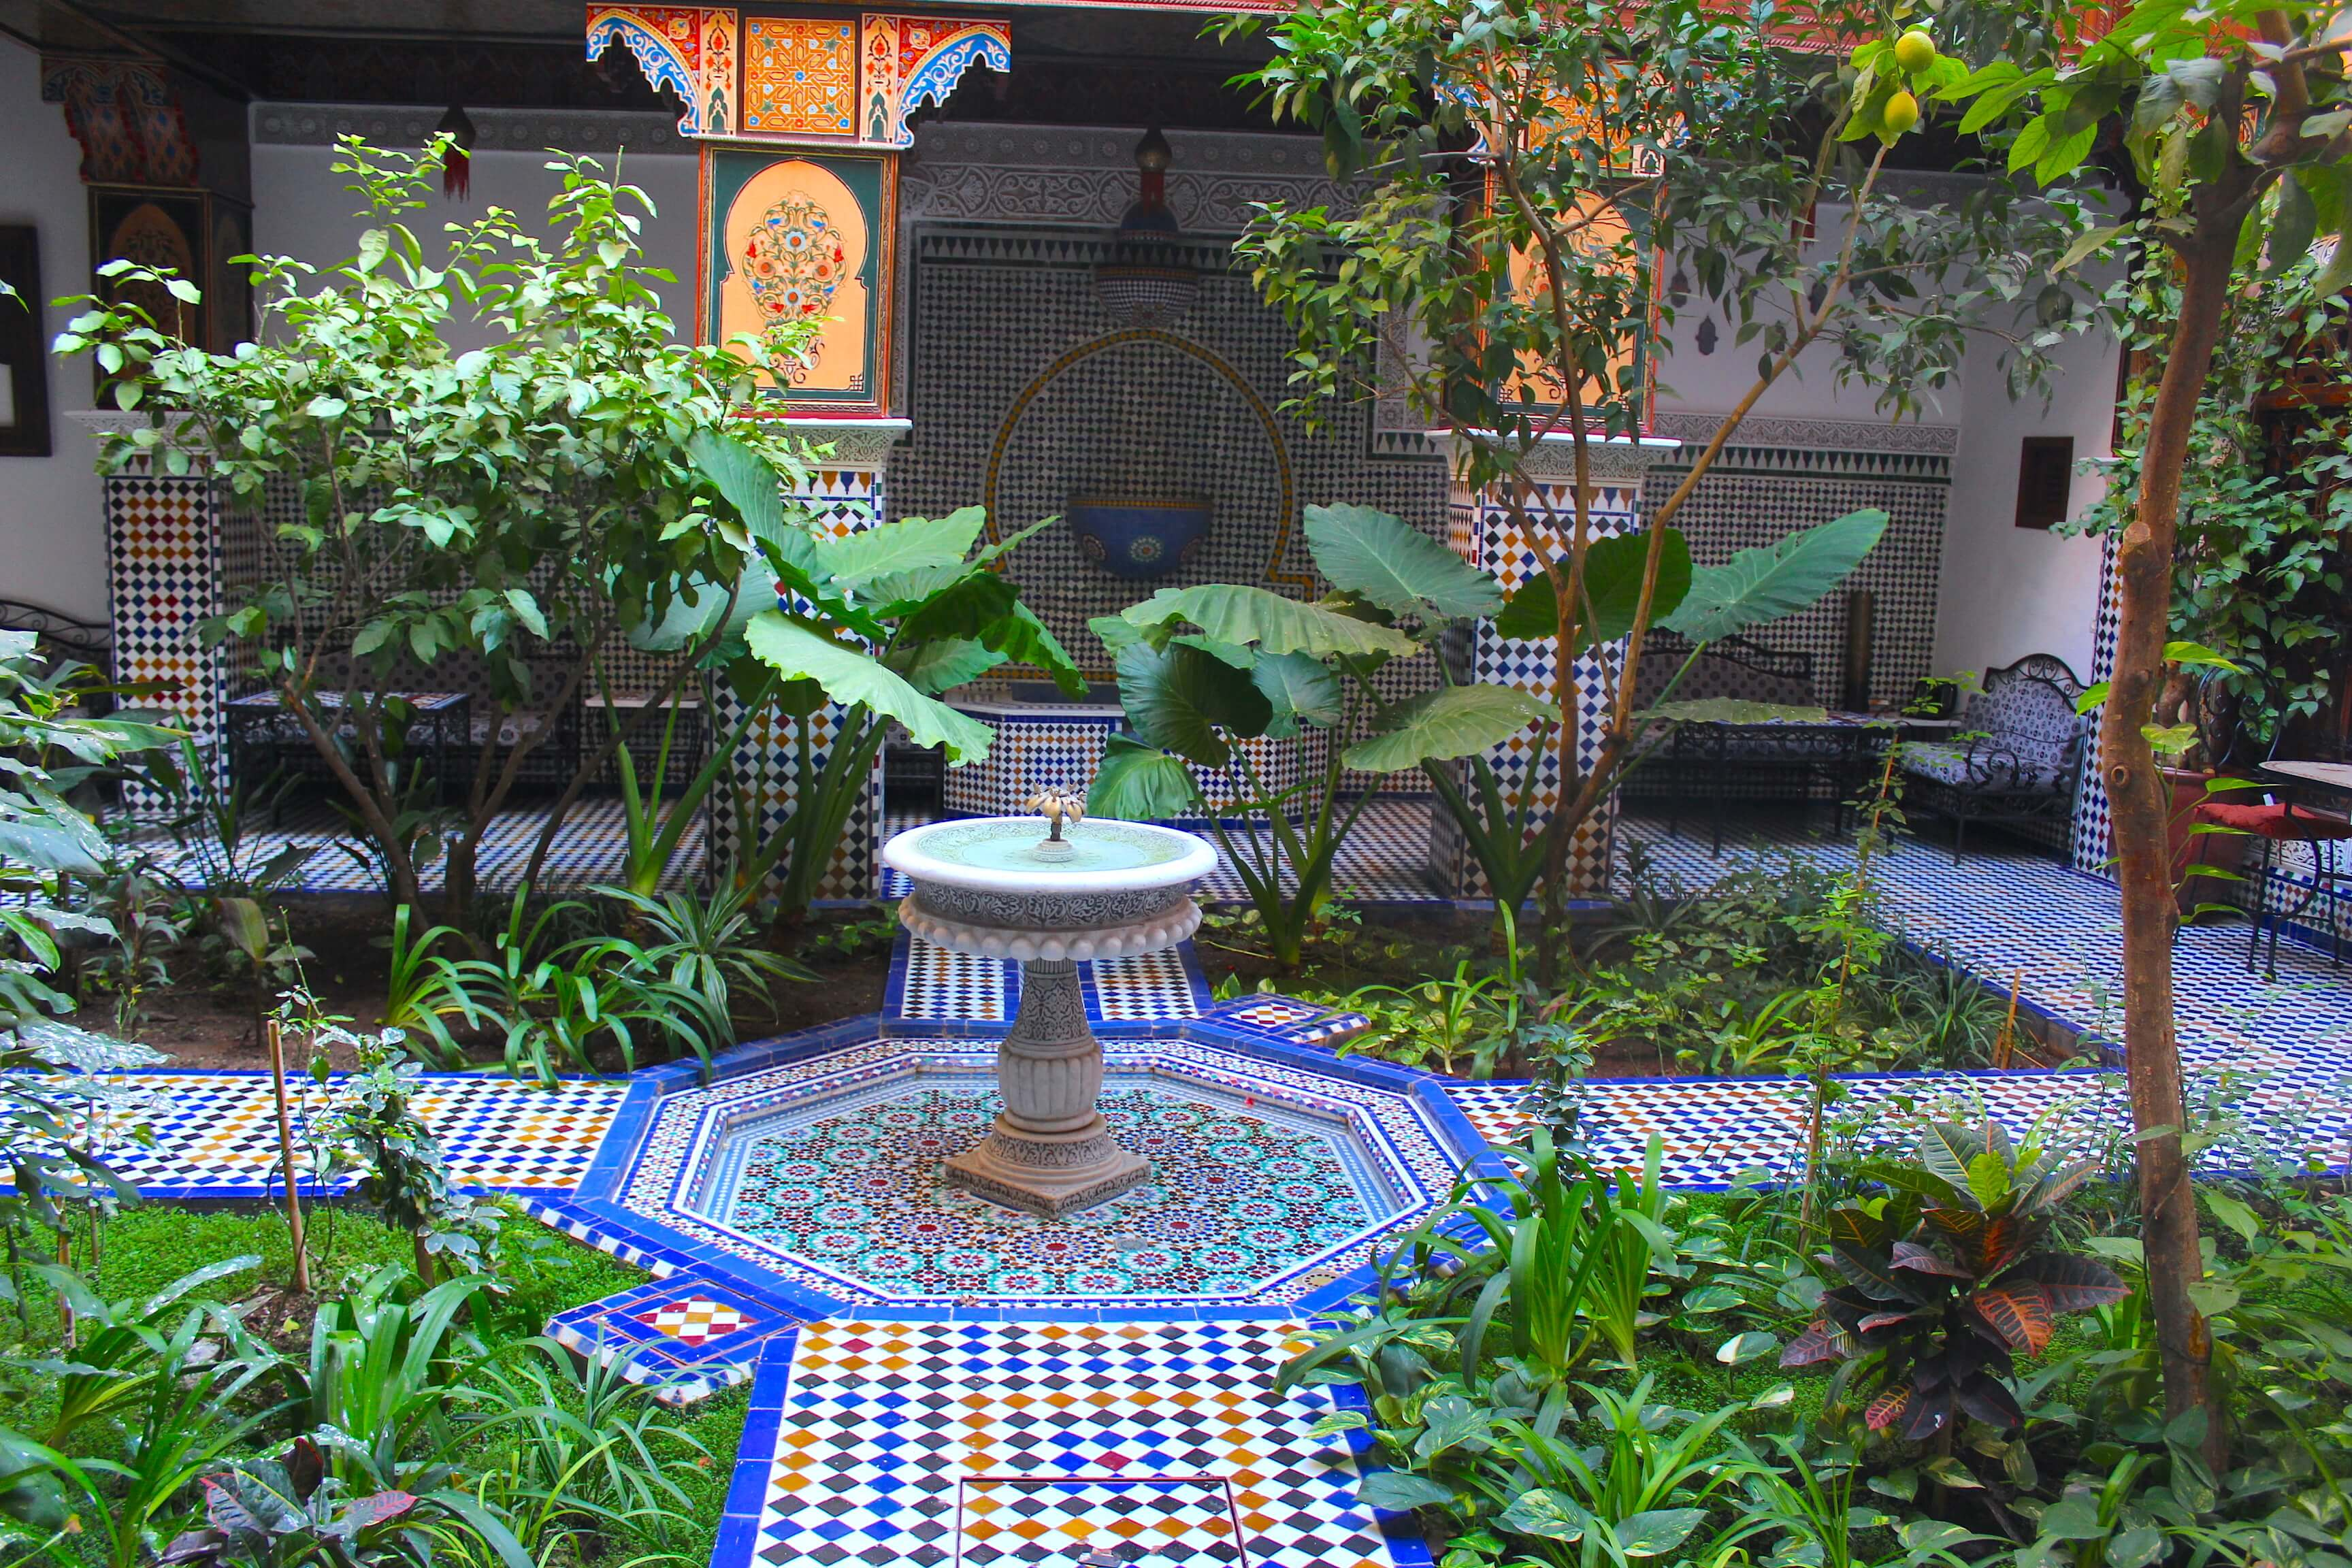 Looking for an authentic riad experience in Fez? Here's why you should stay at Riad Toyour